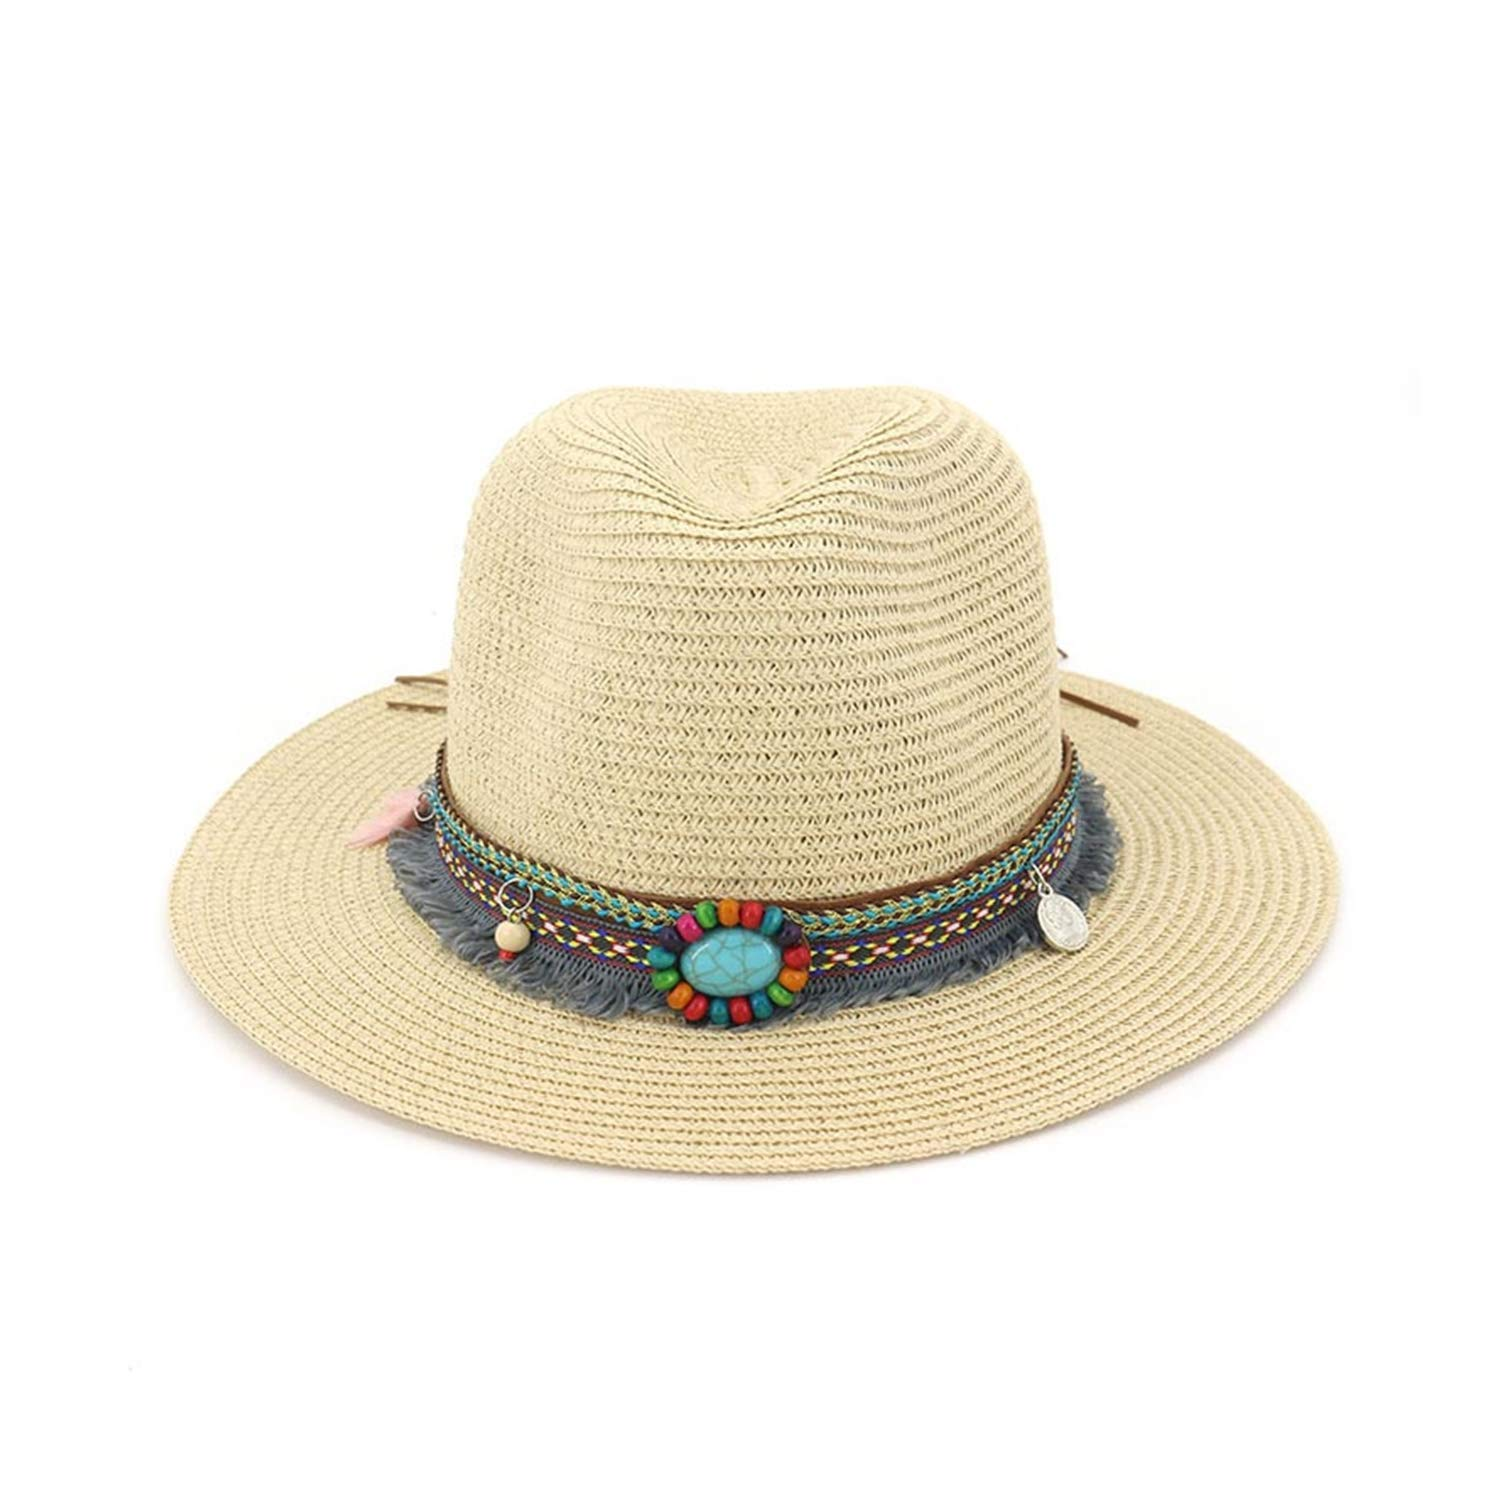 ANNEELA Handmade Knitted Straw Hat Ribbon Stone Accessories Womens Jazz Caps Outdoor S